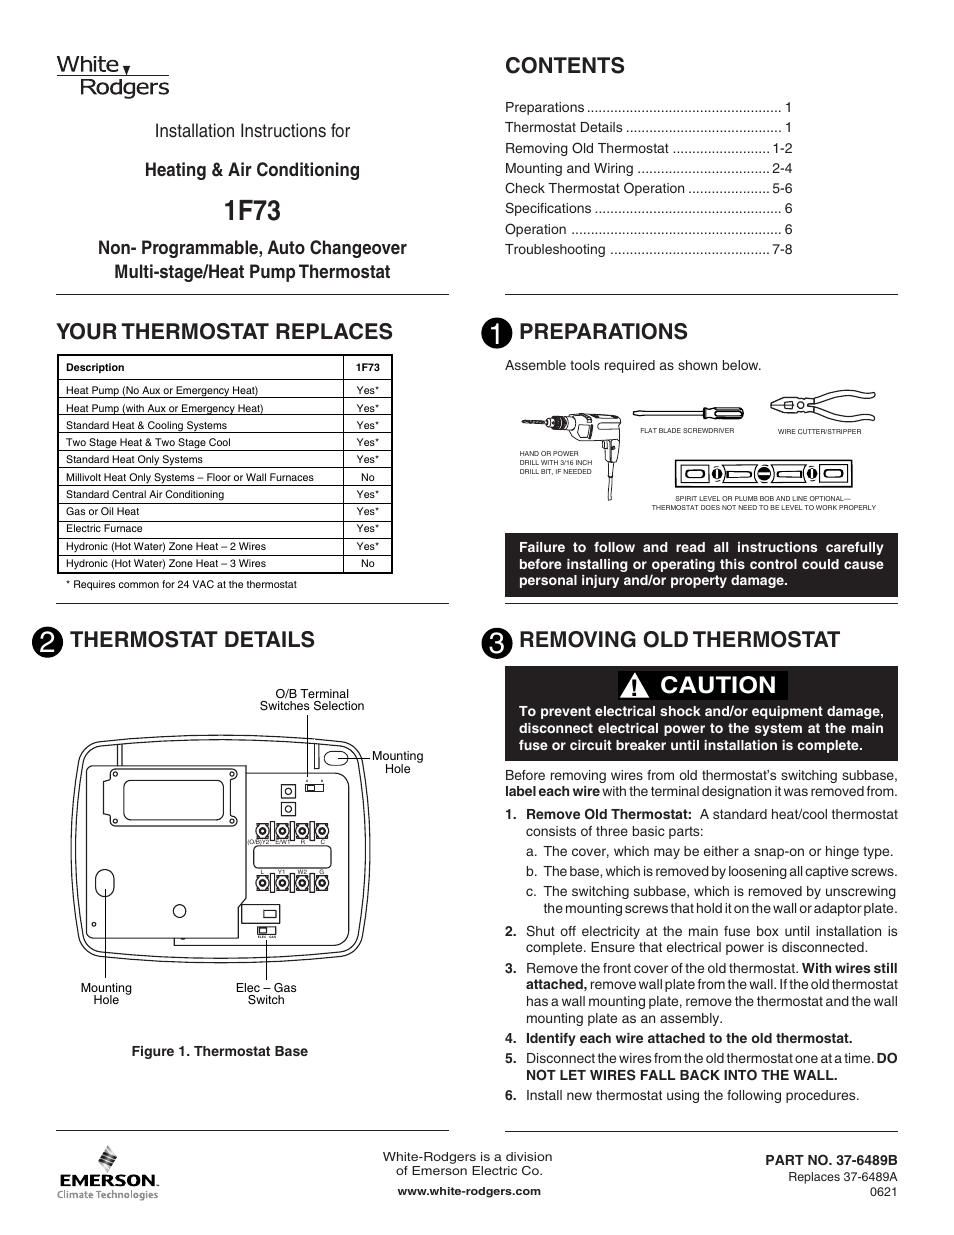 medium resolution of emerson wiring diagram for water pumps